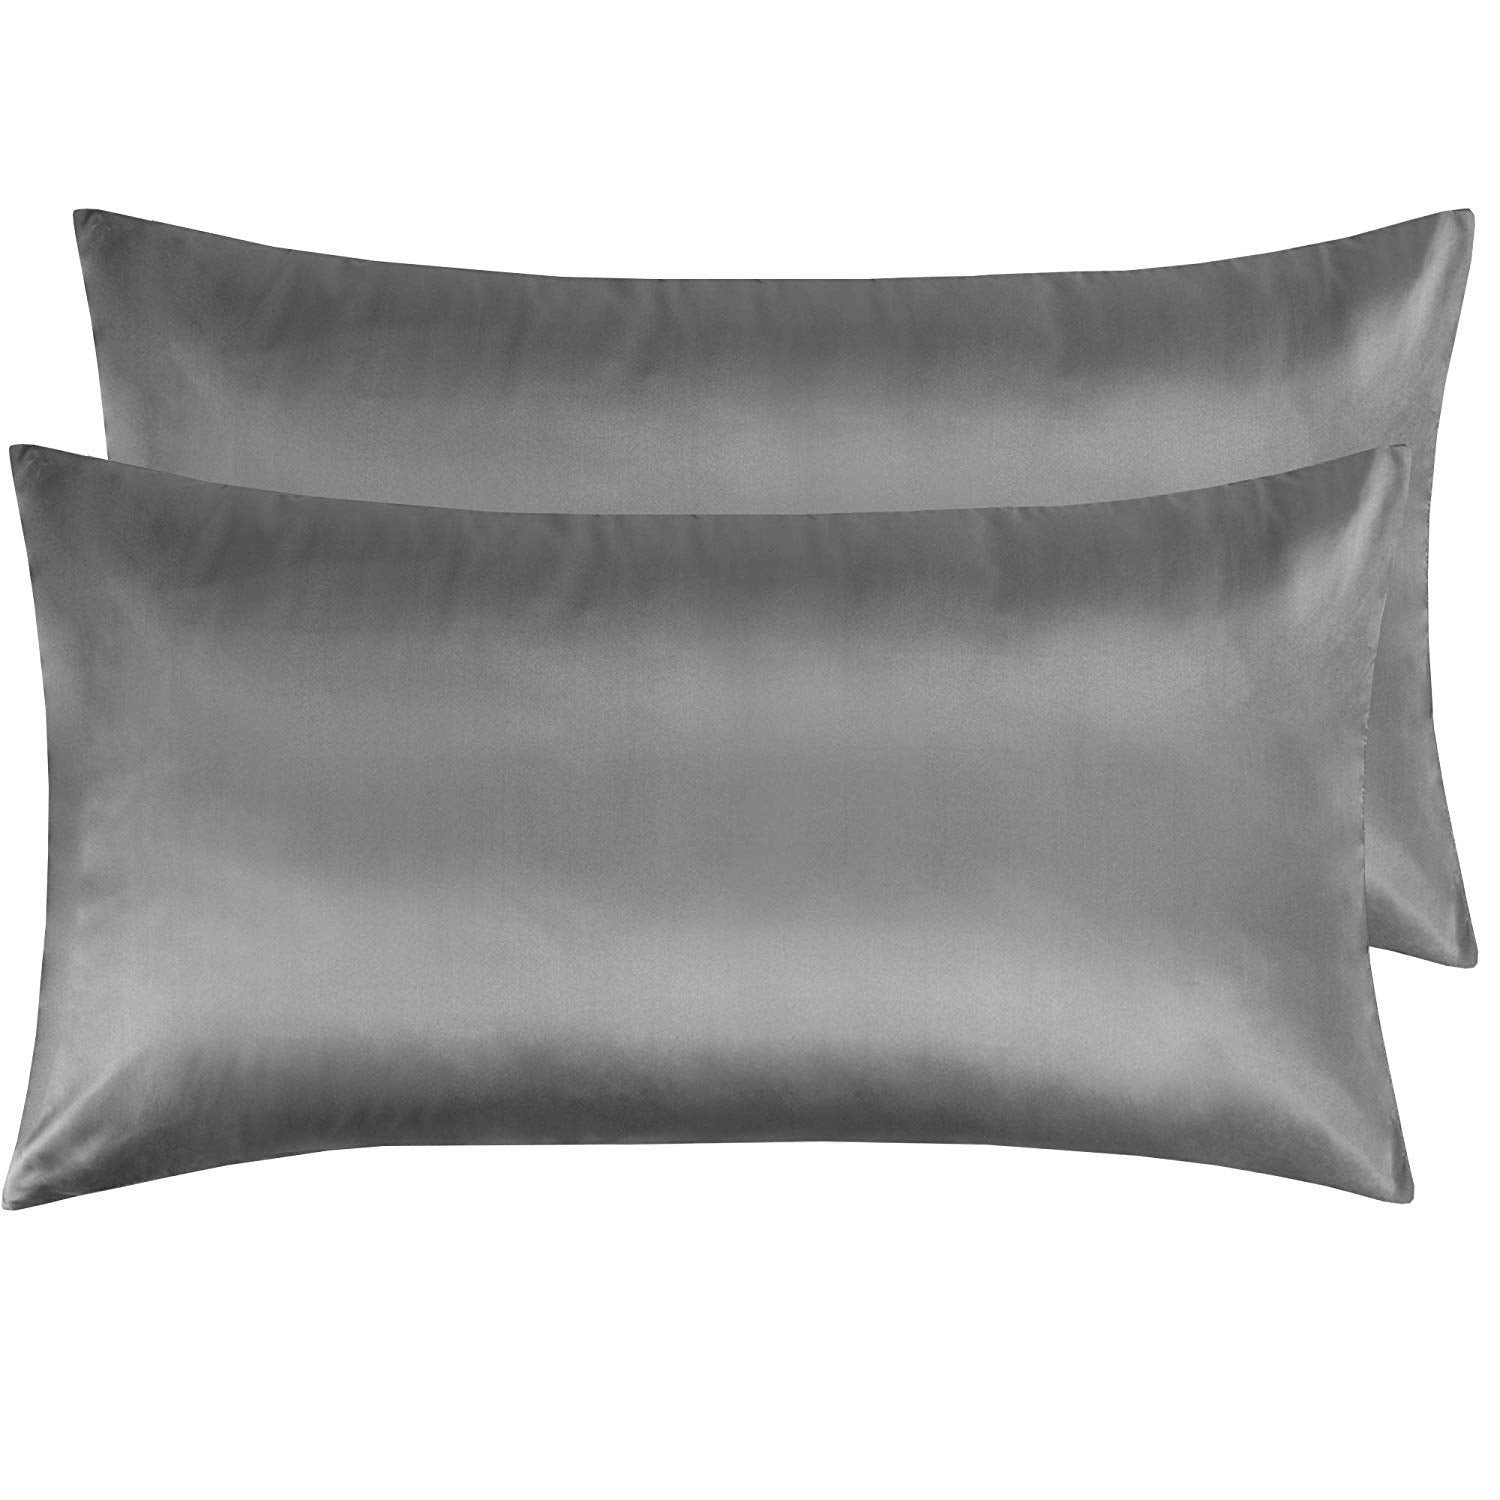 NTBAY Silky Satin Pillowcases Set of 2